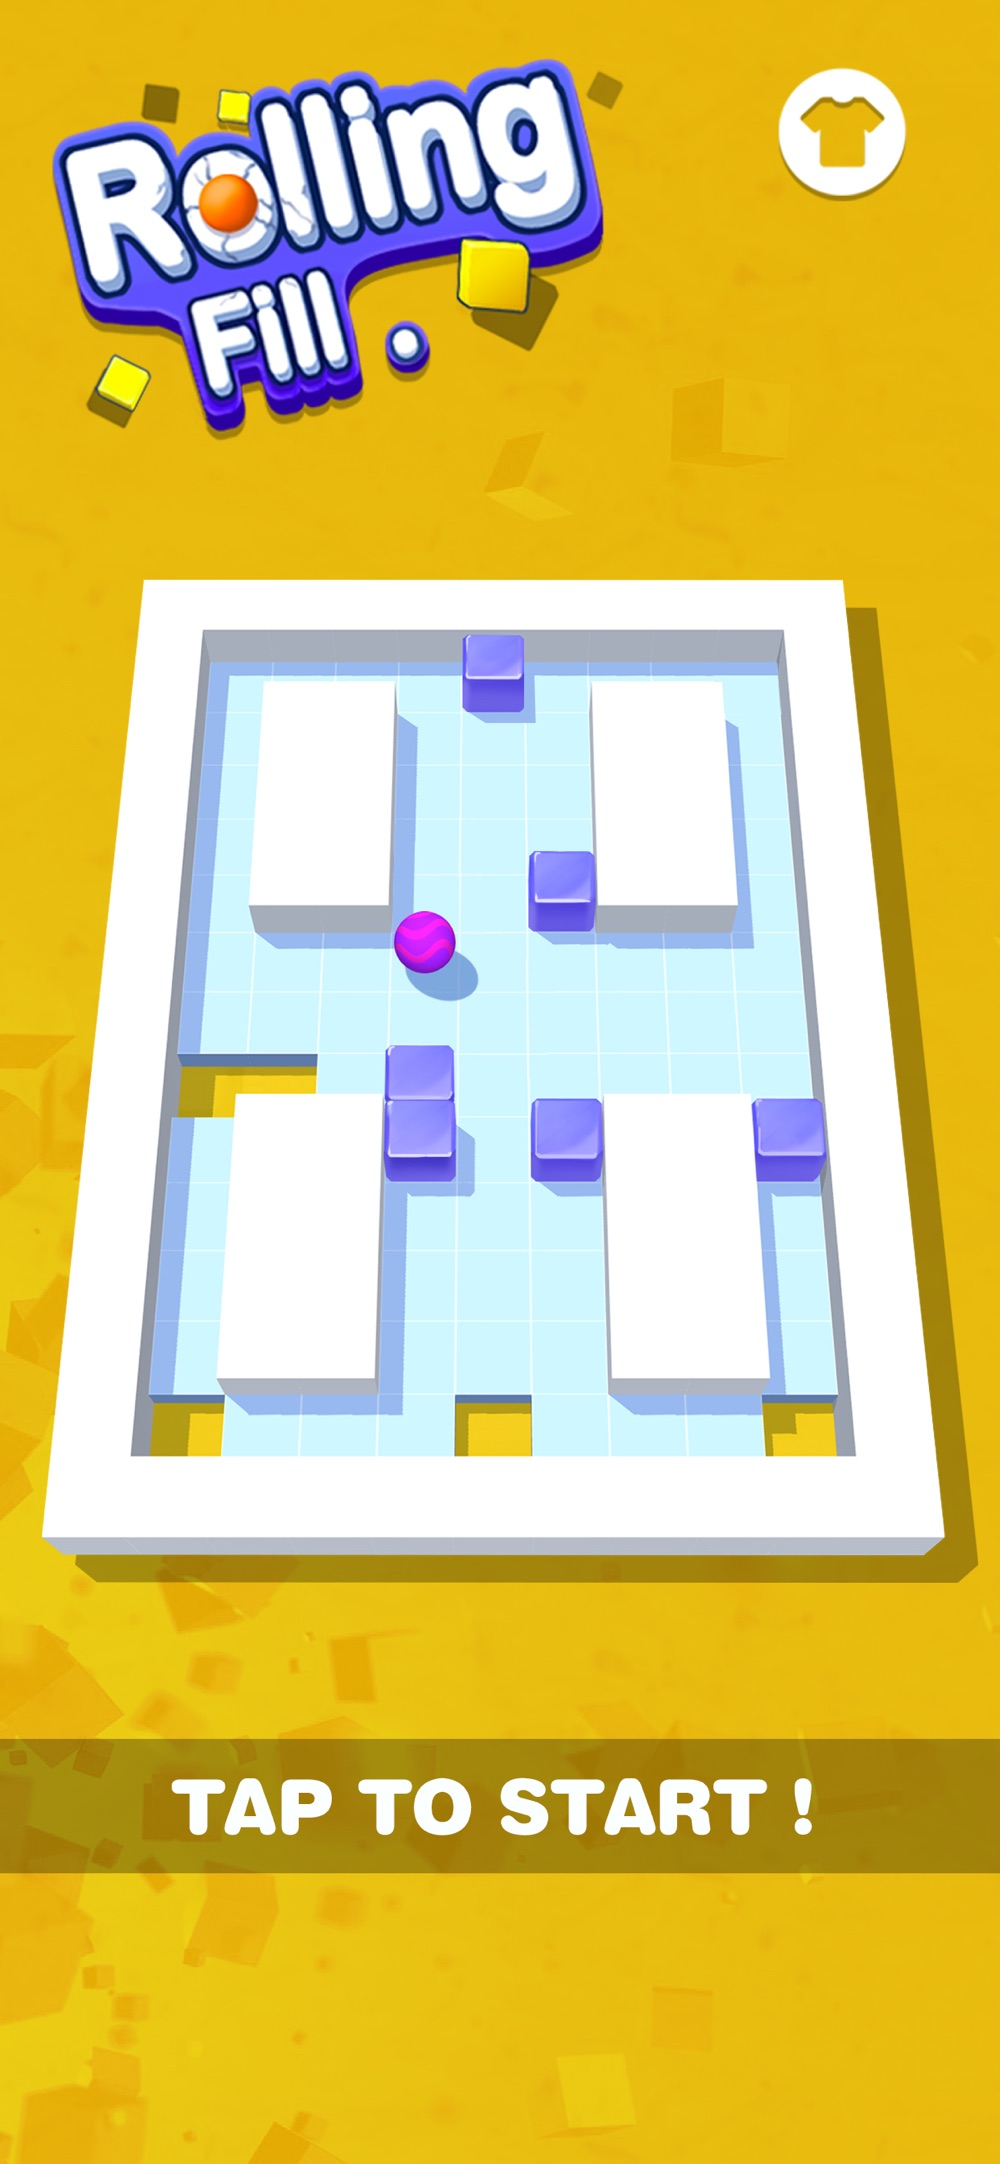 Rolling Fill – Roll Ball 3D Cheat Codes